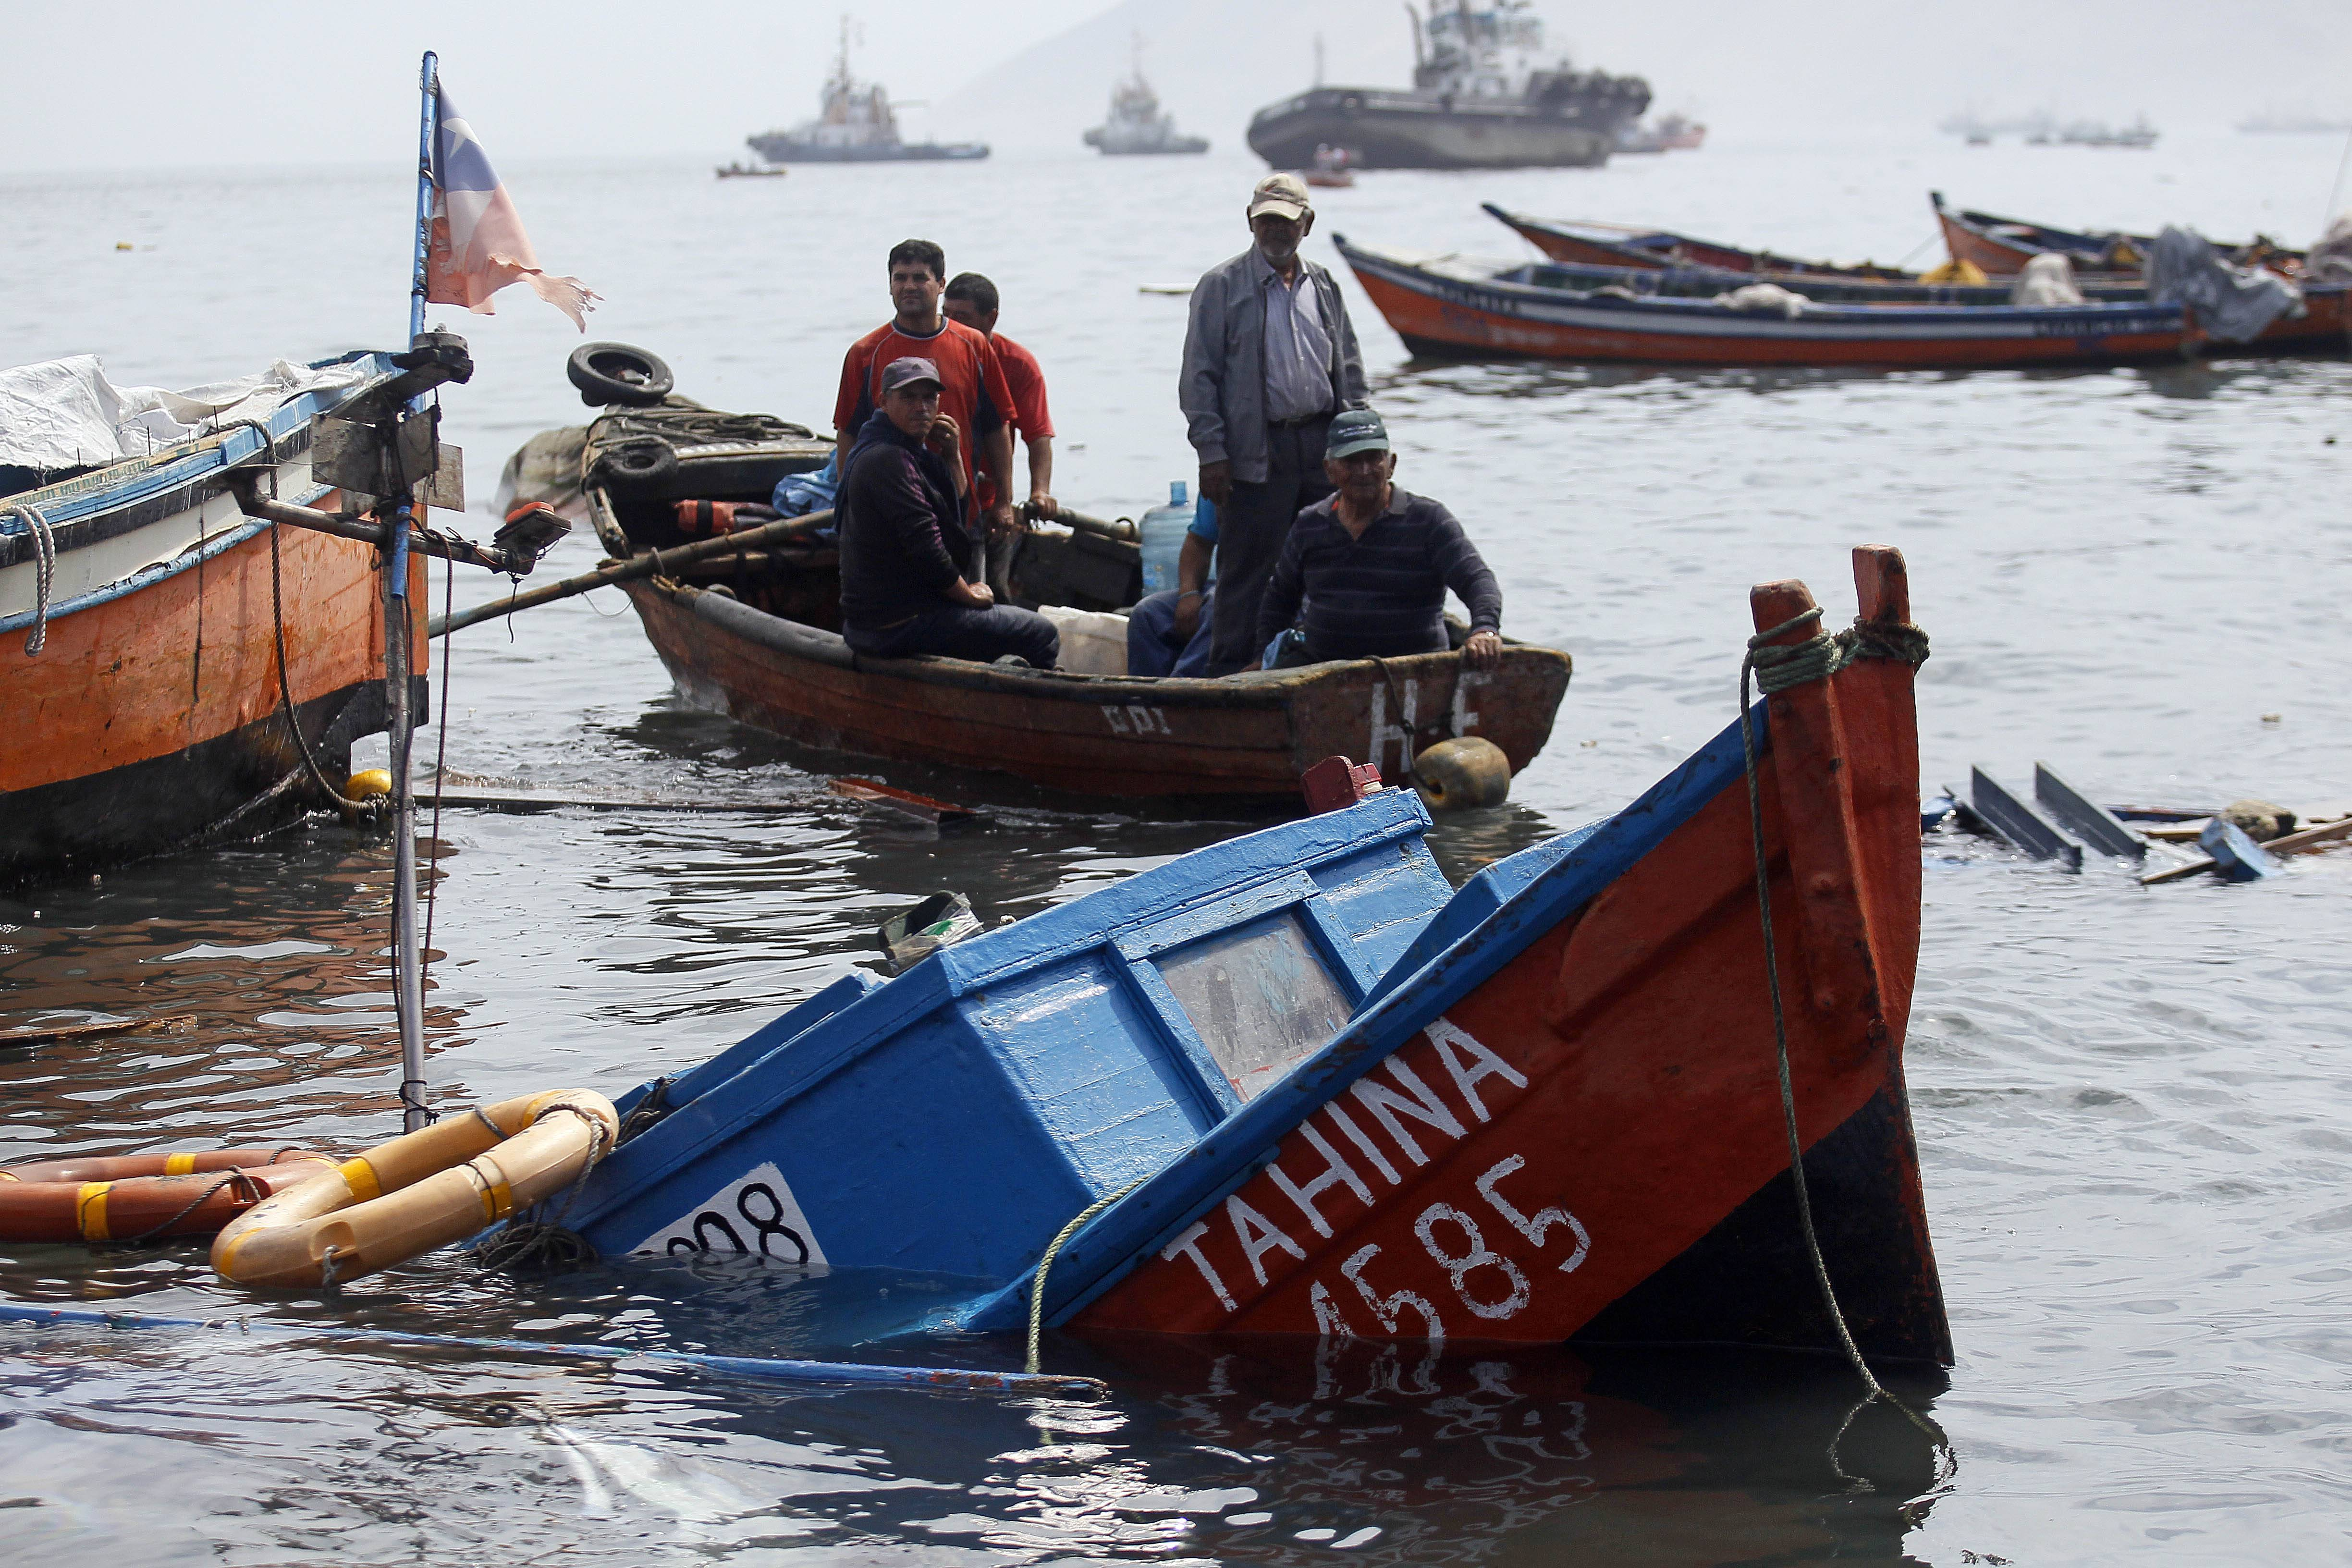 Fishermen look for boats to salvage that were damaged overnight in the port of Iquique, Chile, Wednesday. Chilean authorities discovered surprisingly light damage Wednesday from a magnitude-8.2 quake that struck in the Pacific Ocean Tuesday.